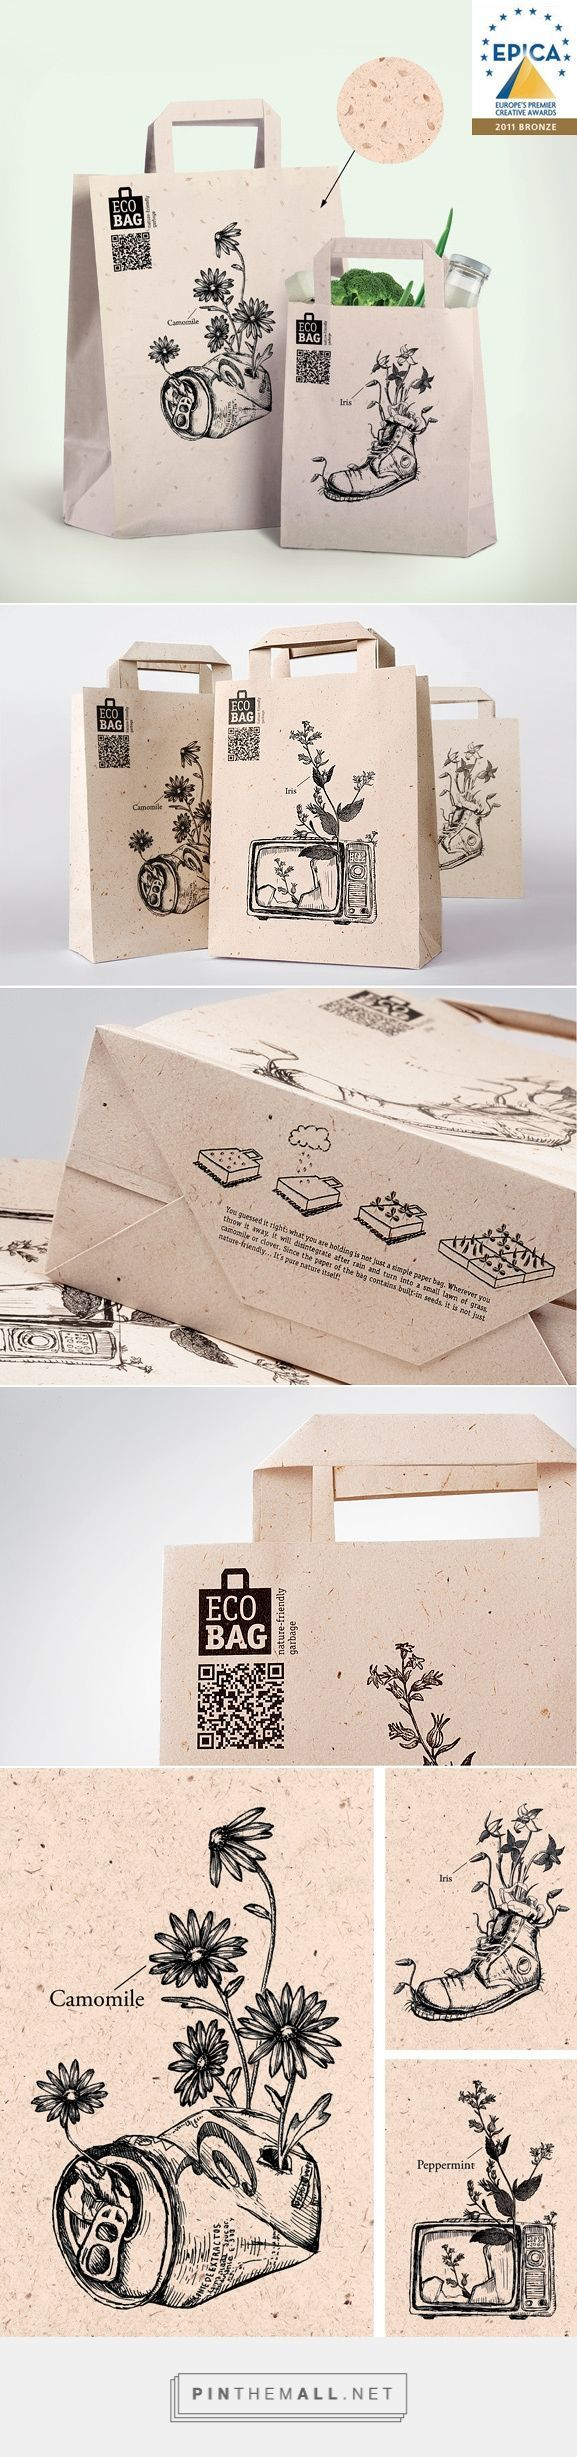 Gorgeous packaging and branding